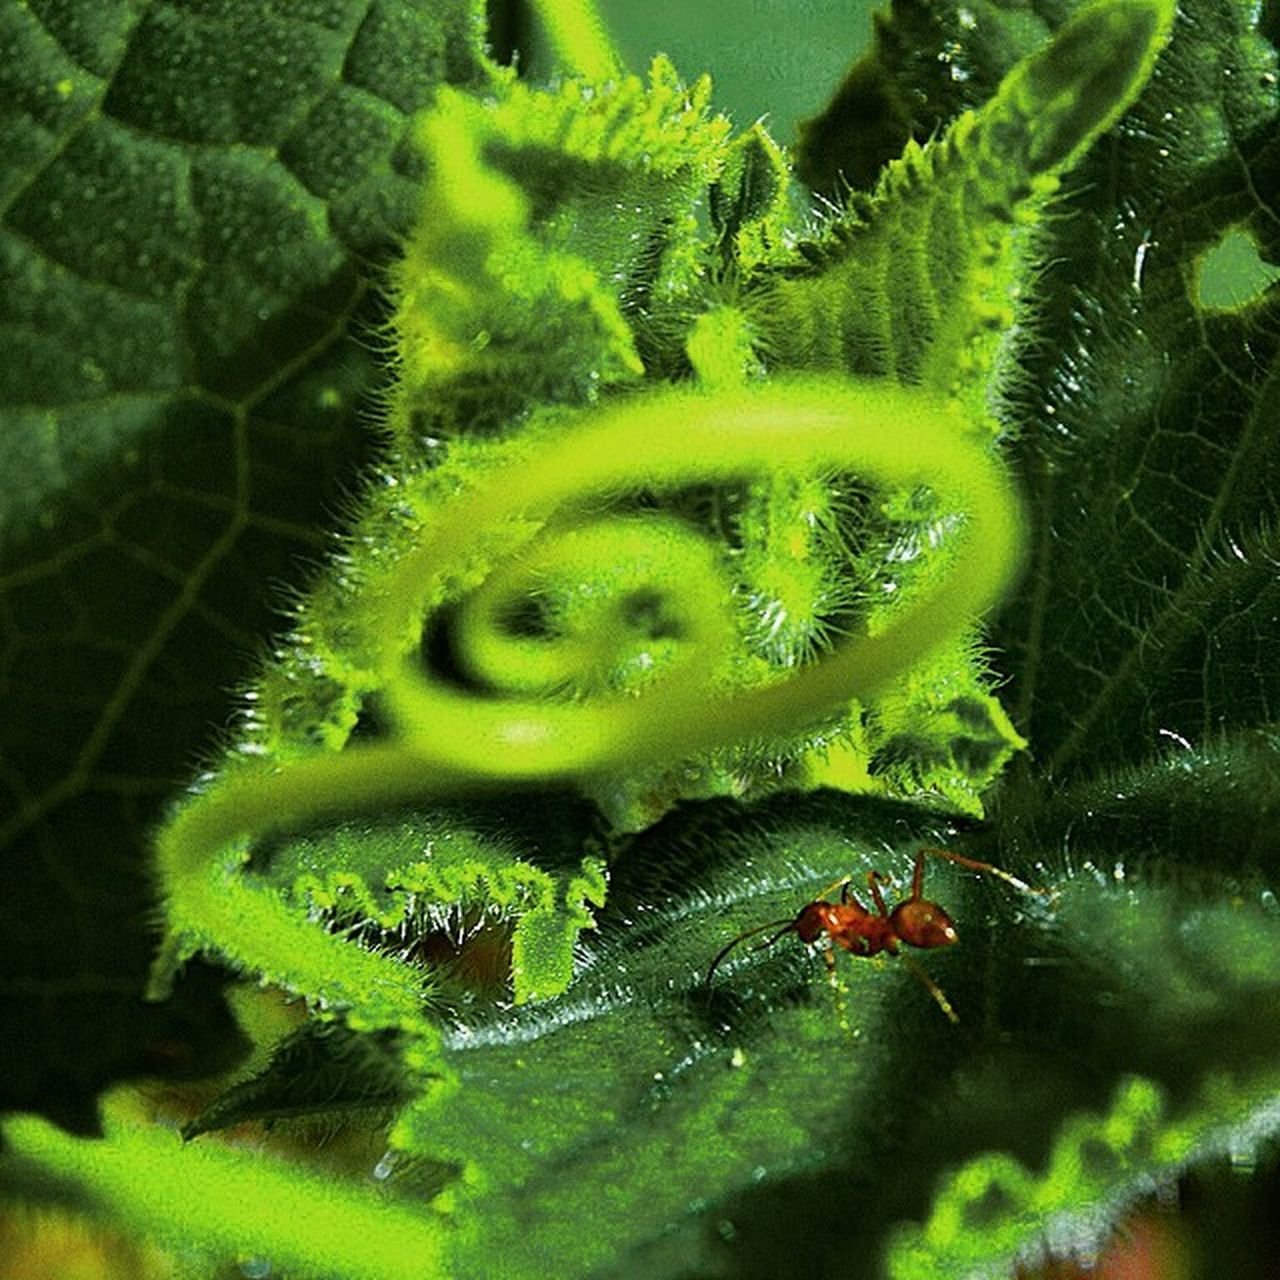 Closeup Macro Nikon DSLR D3200 Outdoors Outside Pest Bugs Insect Green Fuzzy Scenery Ant Fireant Backyard Nature Wildlife Isthishowwegetantsotherbarry Weakarcherreference